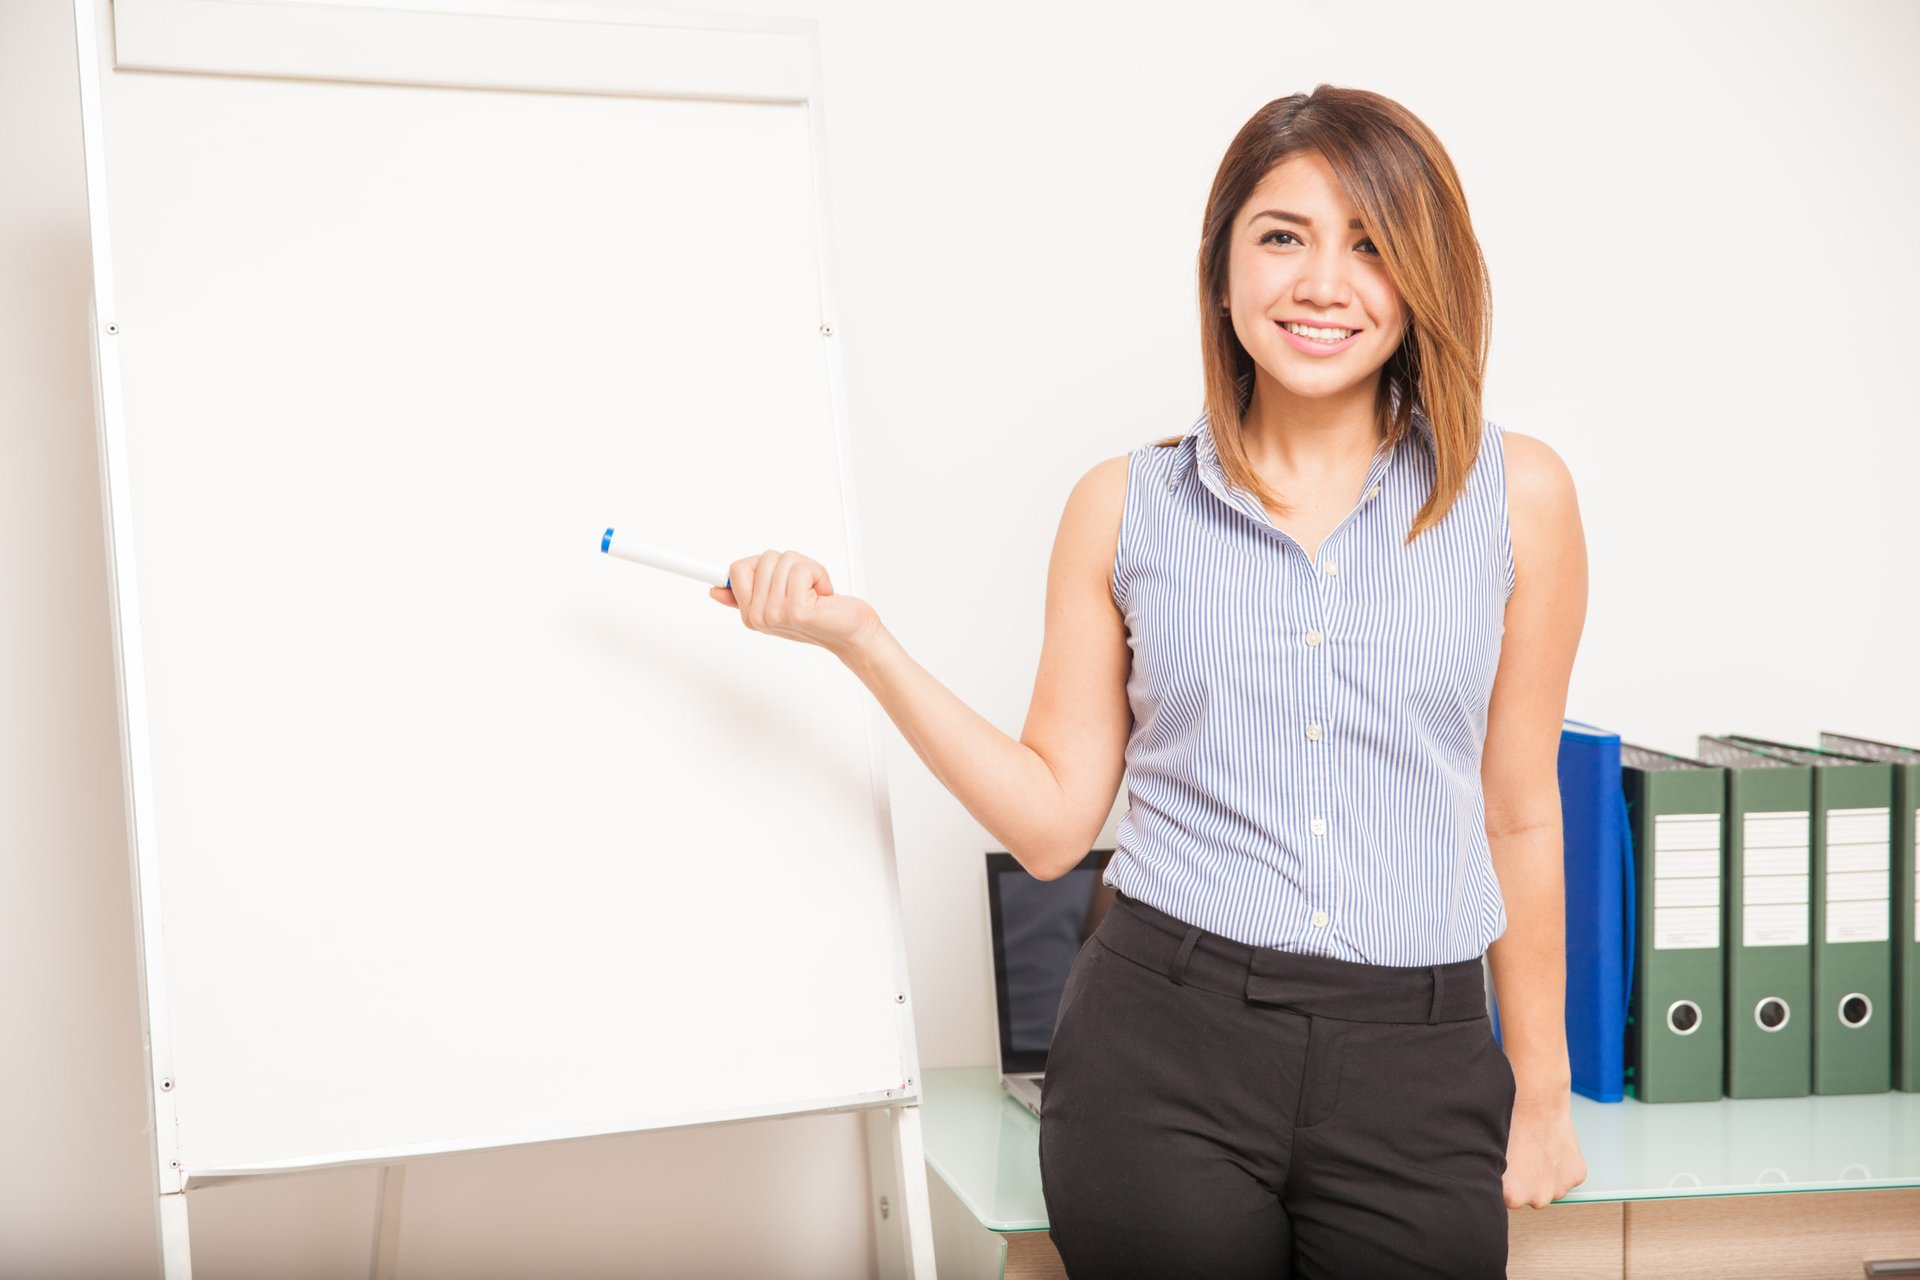 woman using a whiteboard